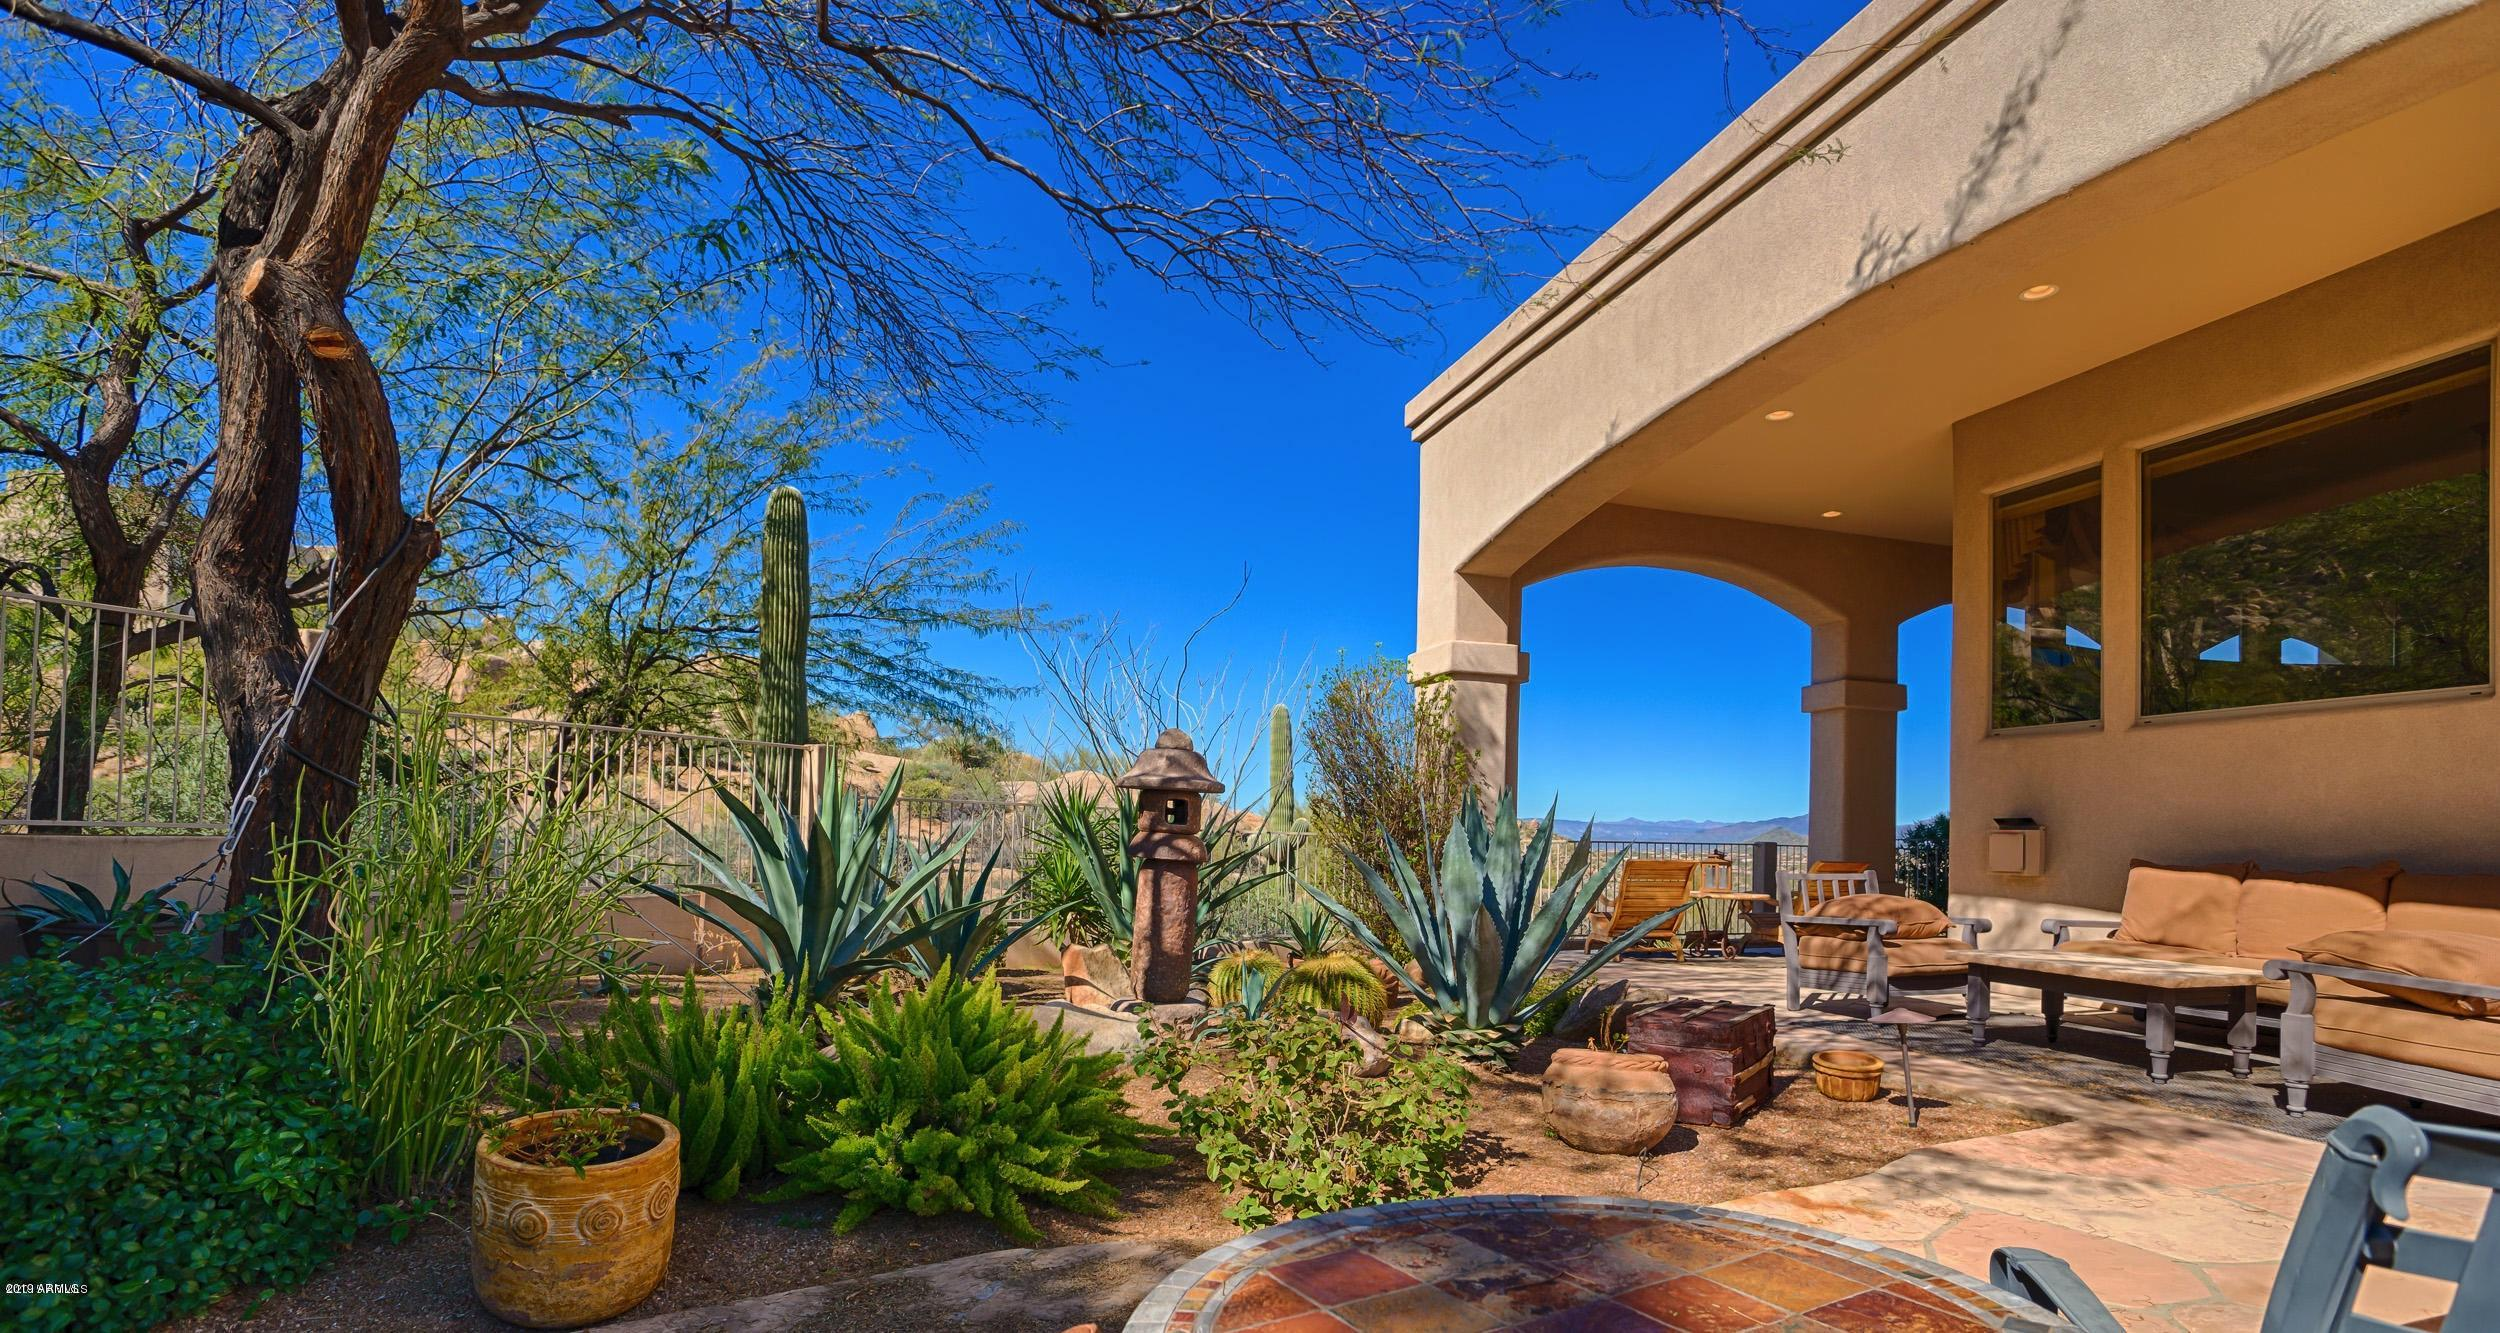 MLS 5877784 11305 E TROON MOUNTAIN Drive, Scottsdale, AZ 85255 Scottsdale AZ Private Pool